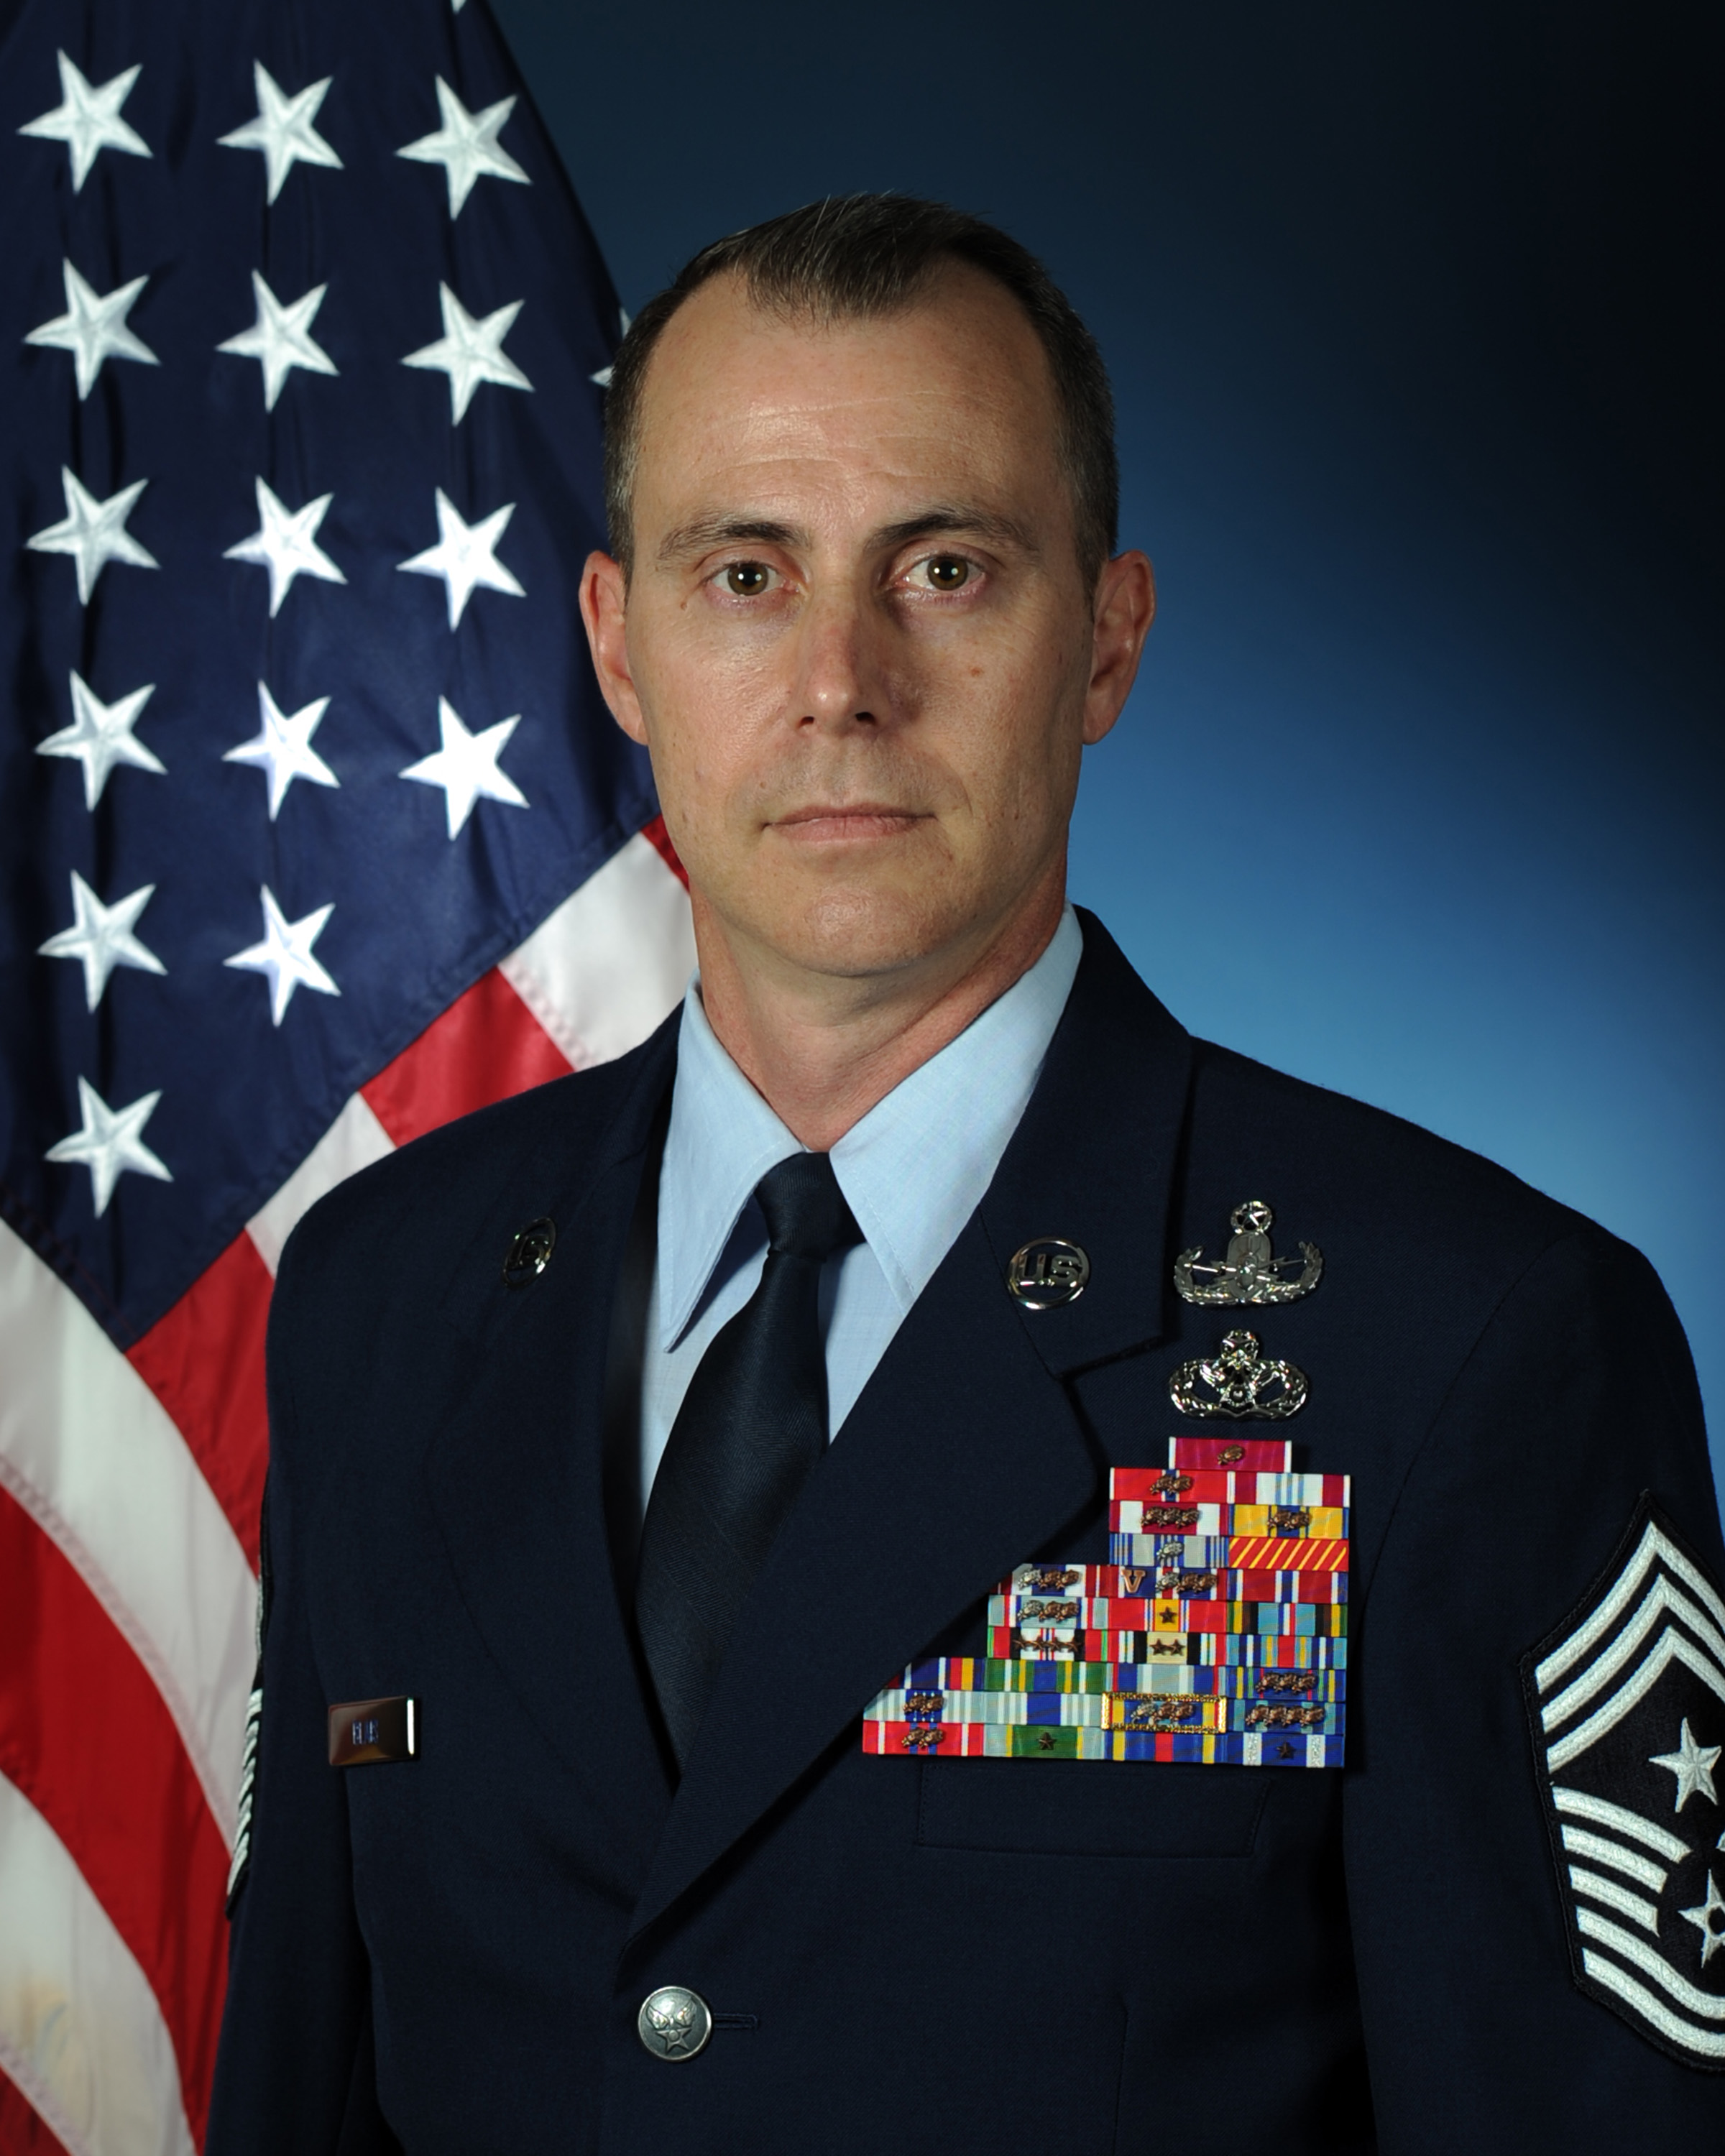 Chief Master Sgt. Brion Blais